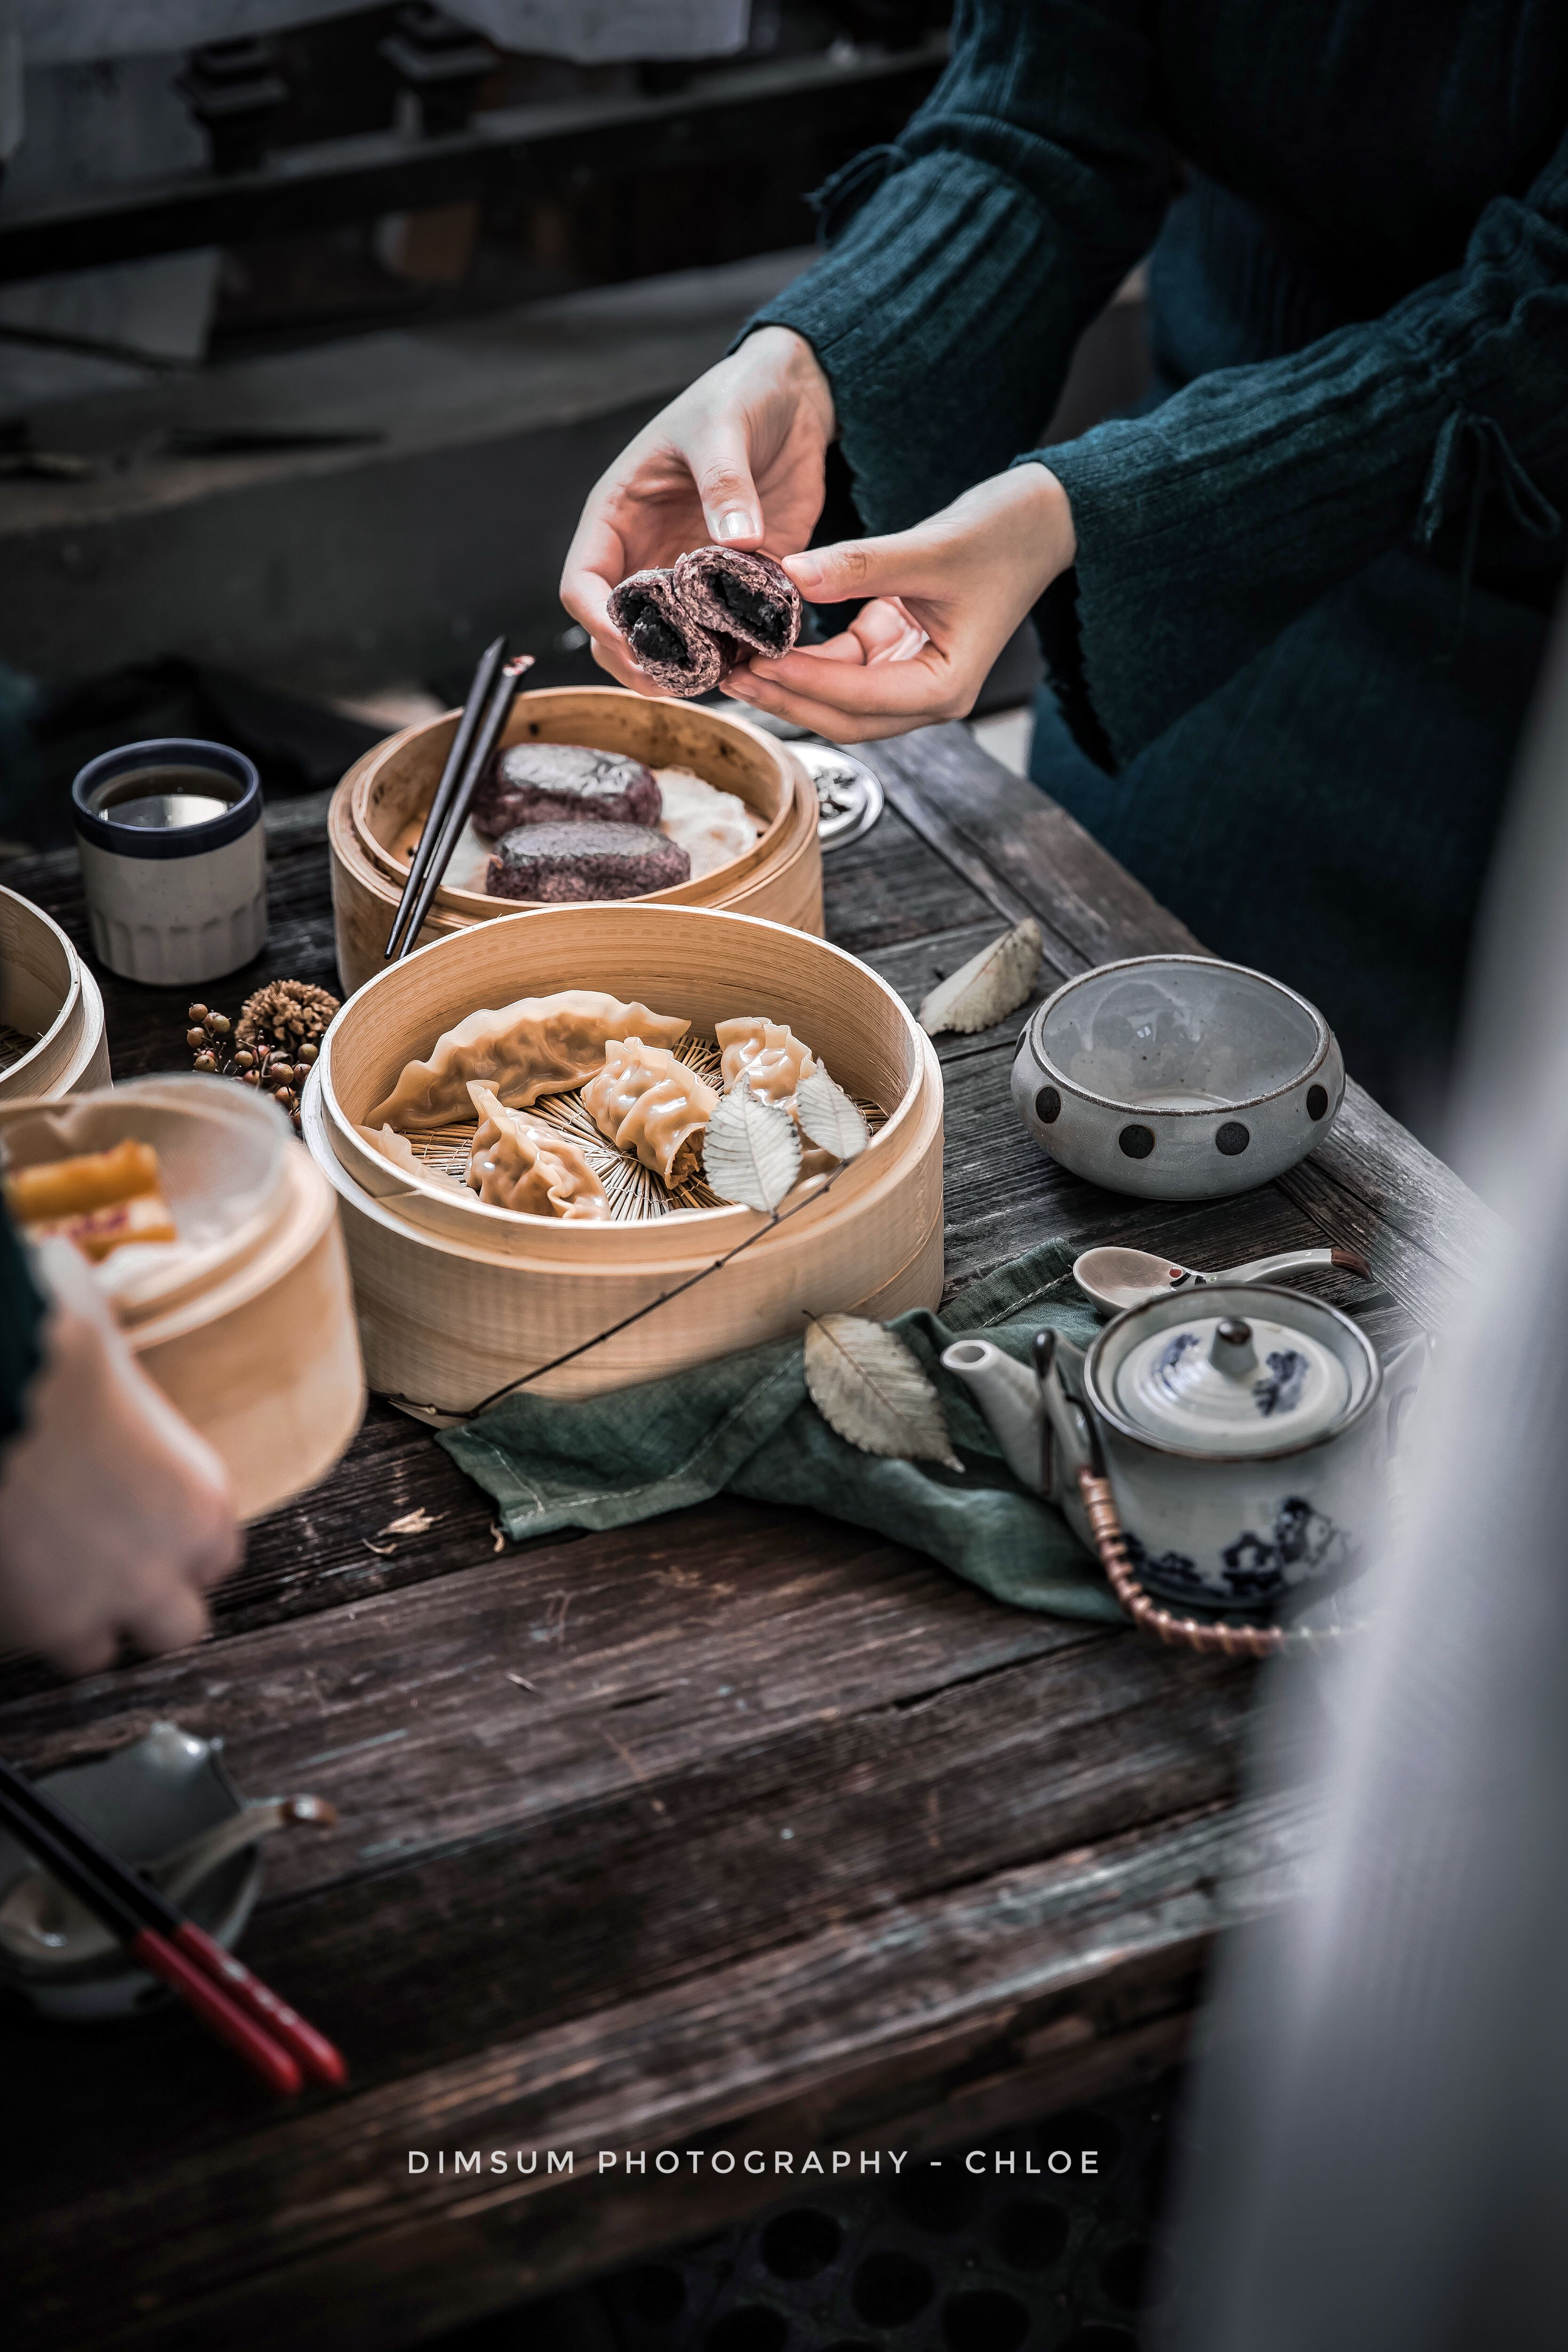 Difference Dimsum Food Photography Western Food Food Drink